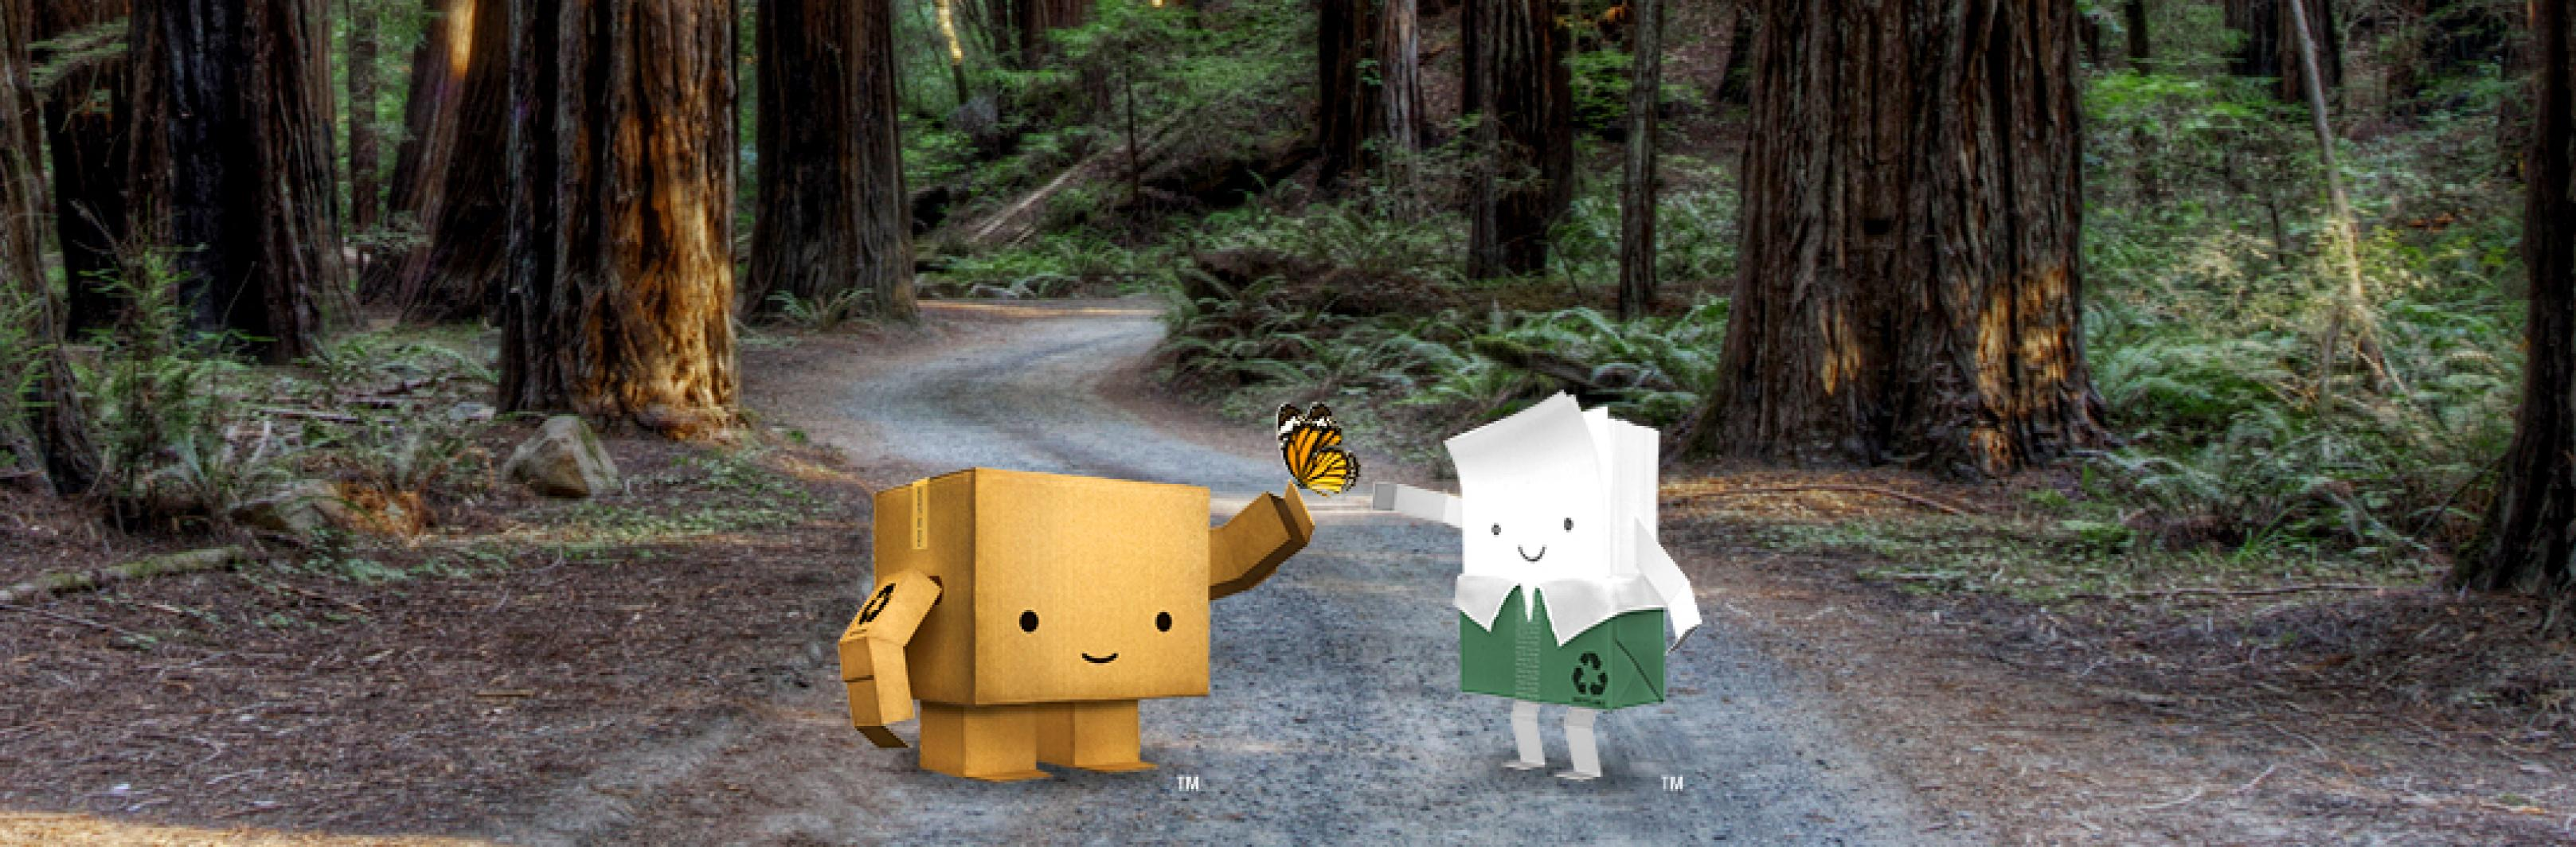 Paper and packaging characters in the forest